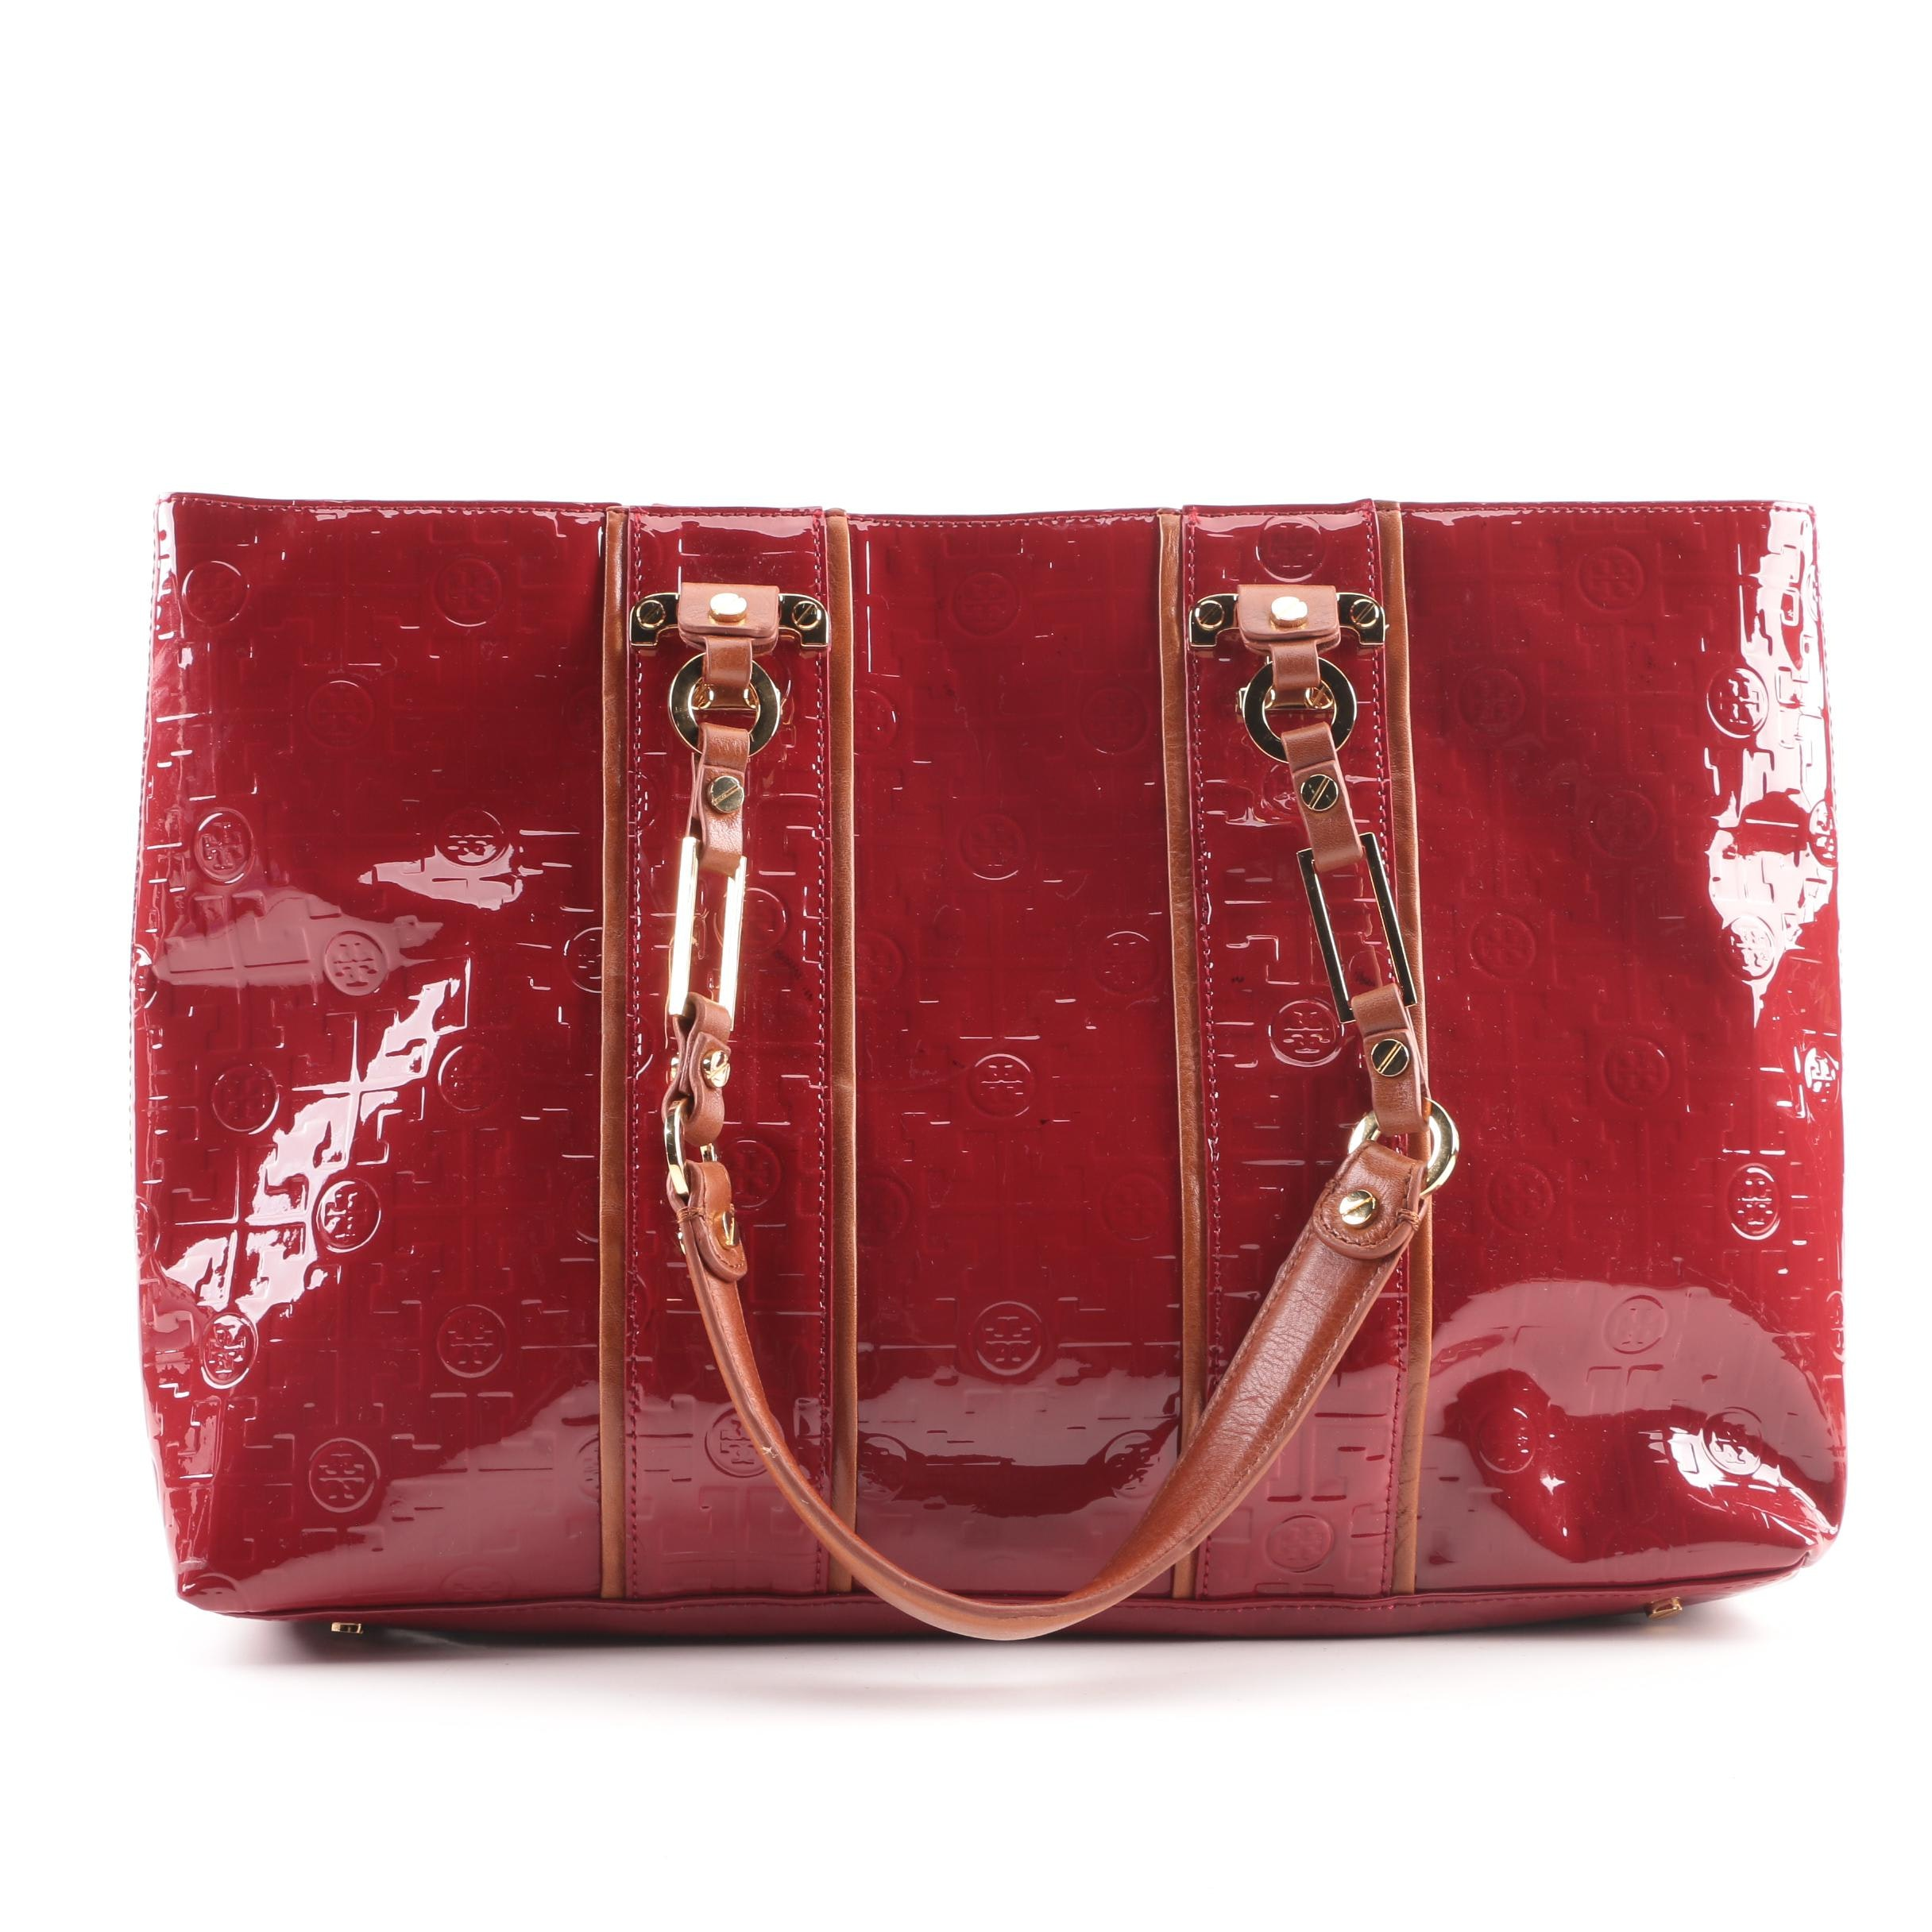 Tory Burch Signature Red Patent Leather and Tan Leather Tote